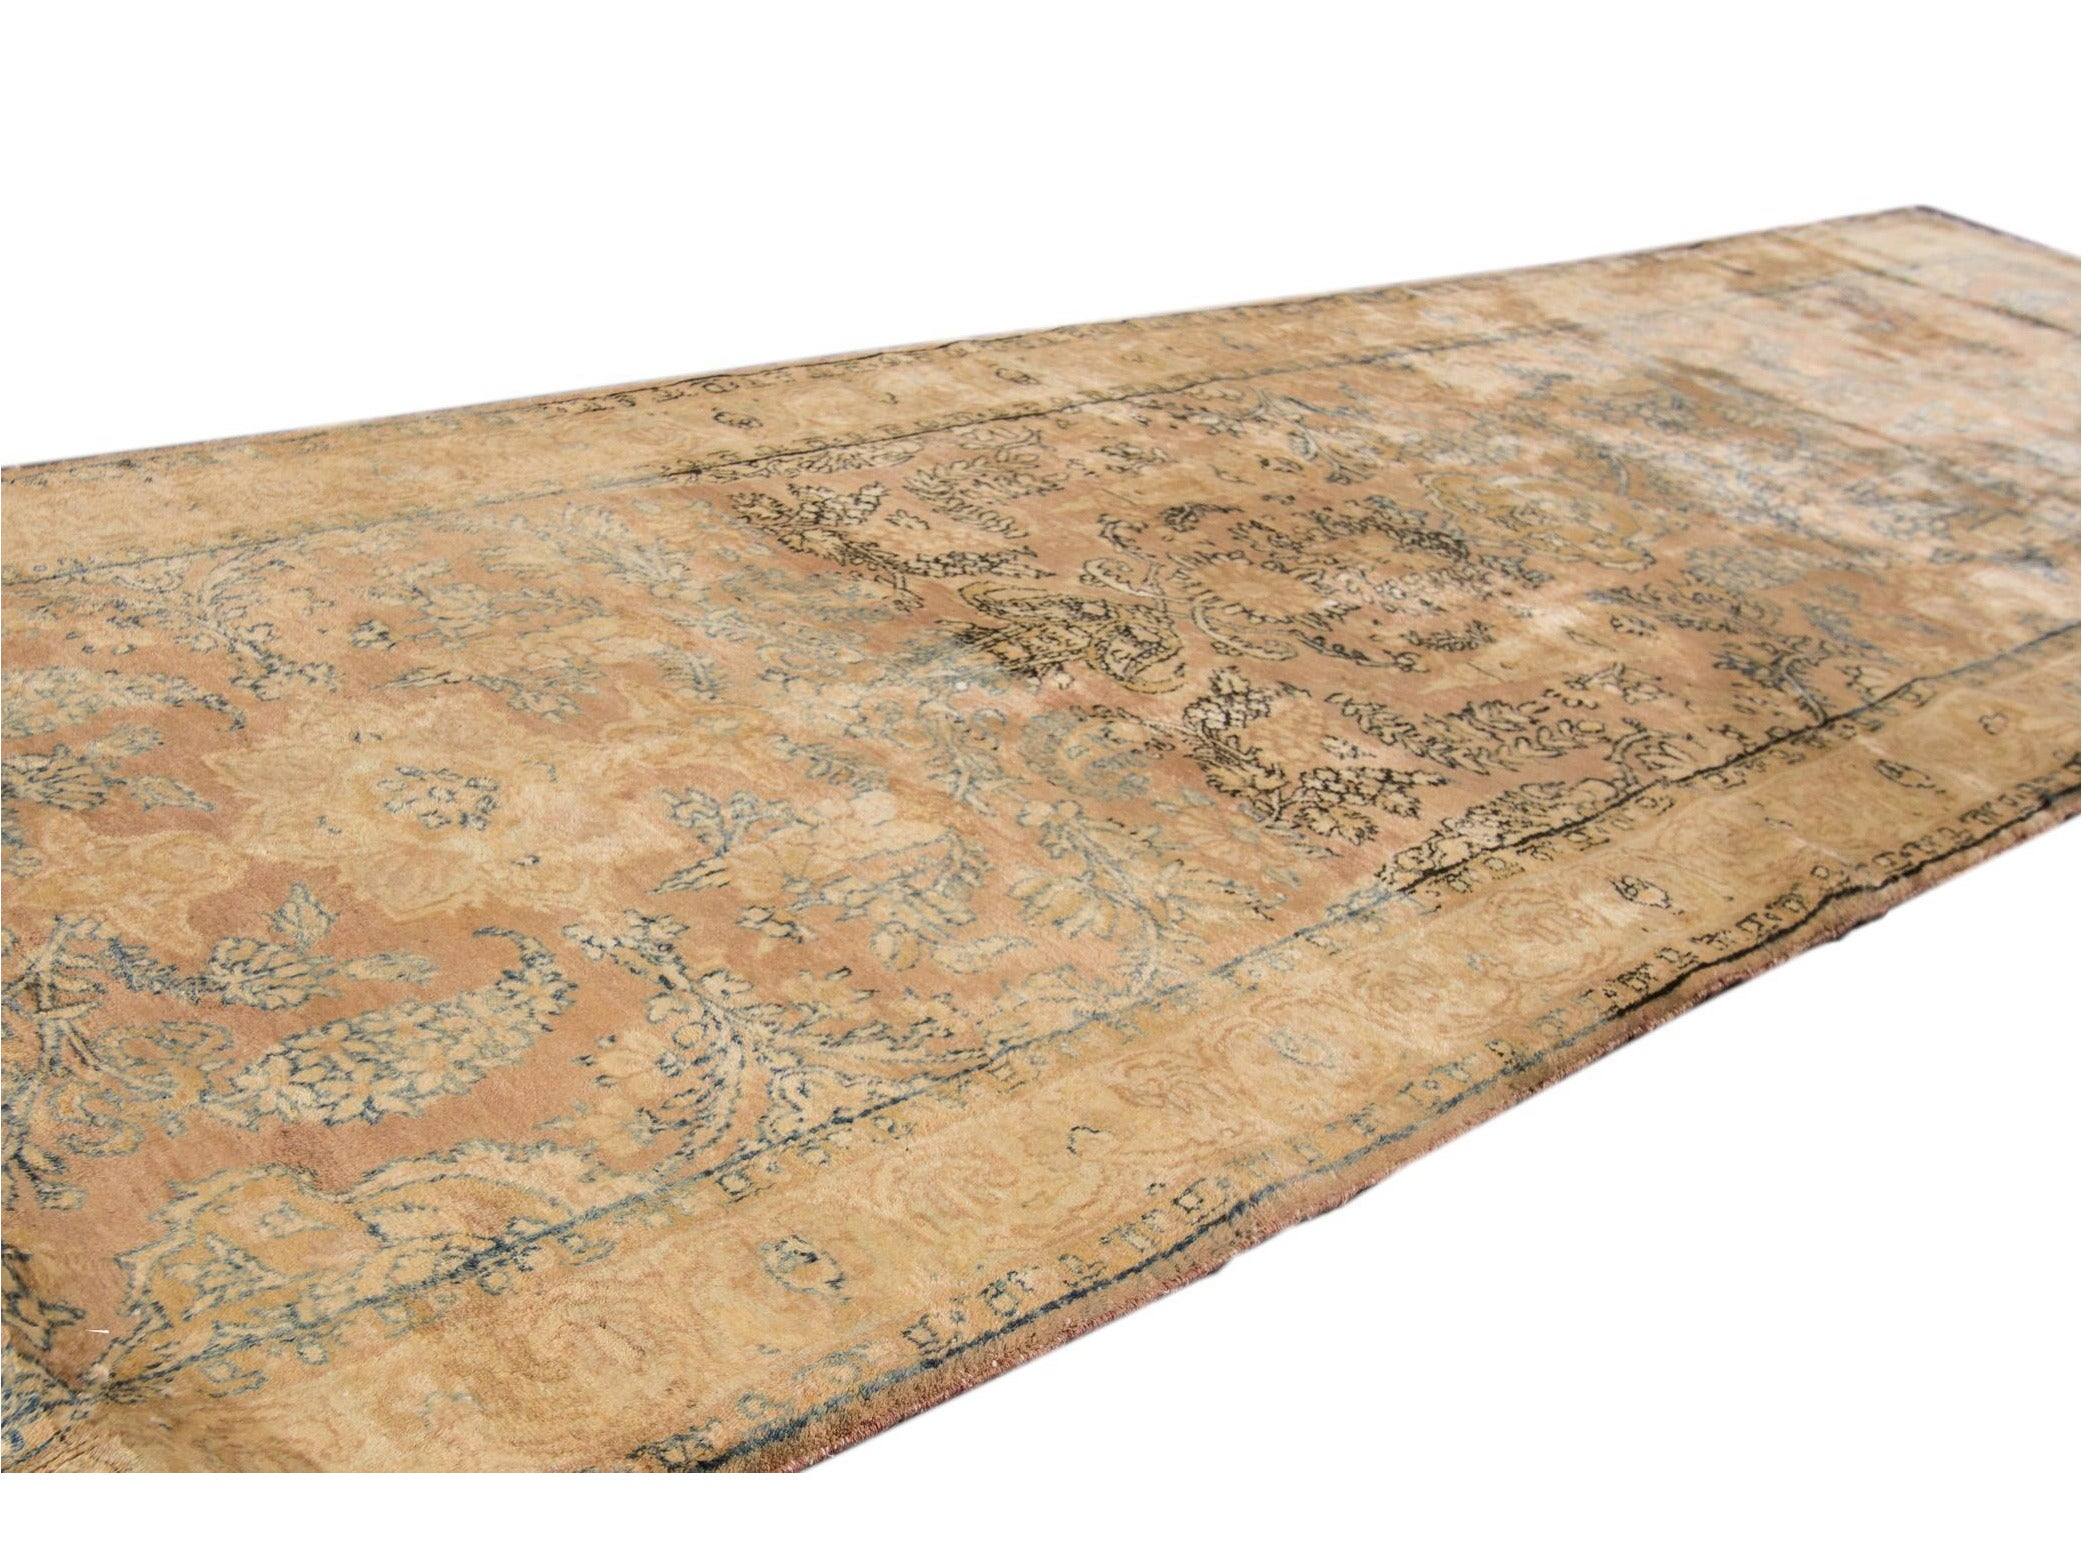 Early 20th Century Antique Persian Kerman Wool Runner, 3 X 21